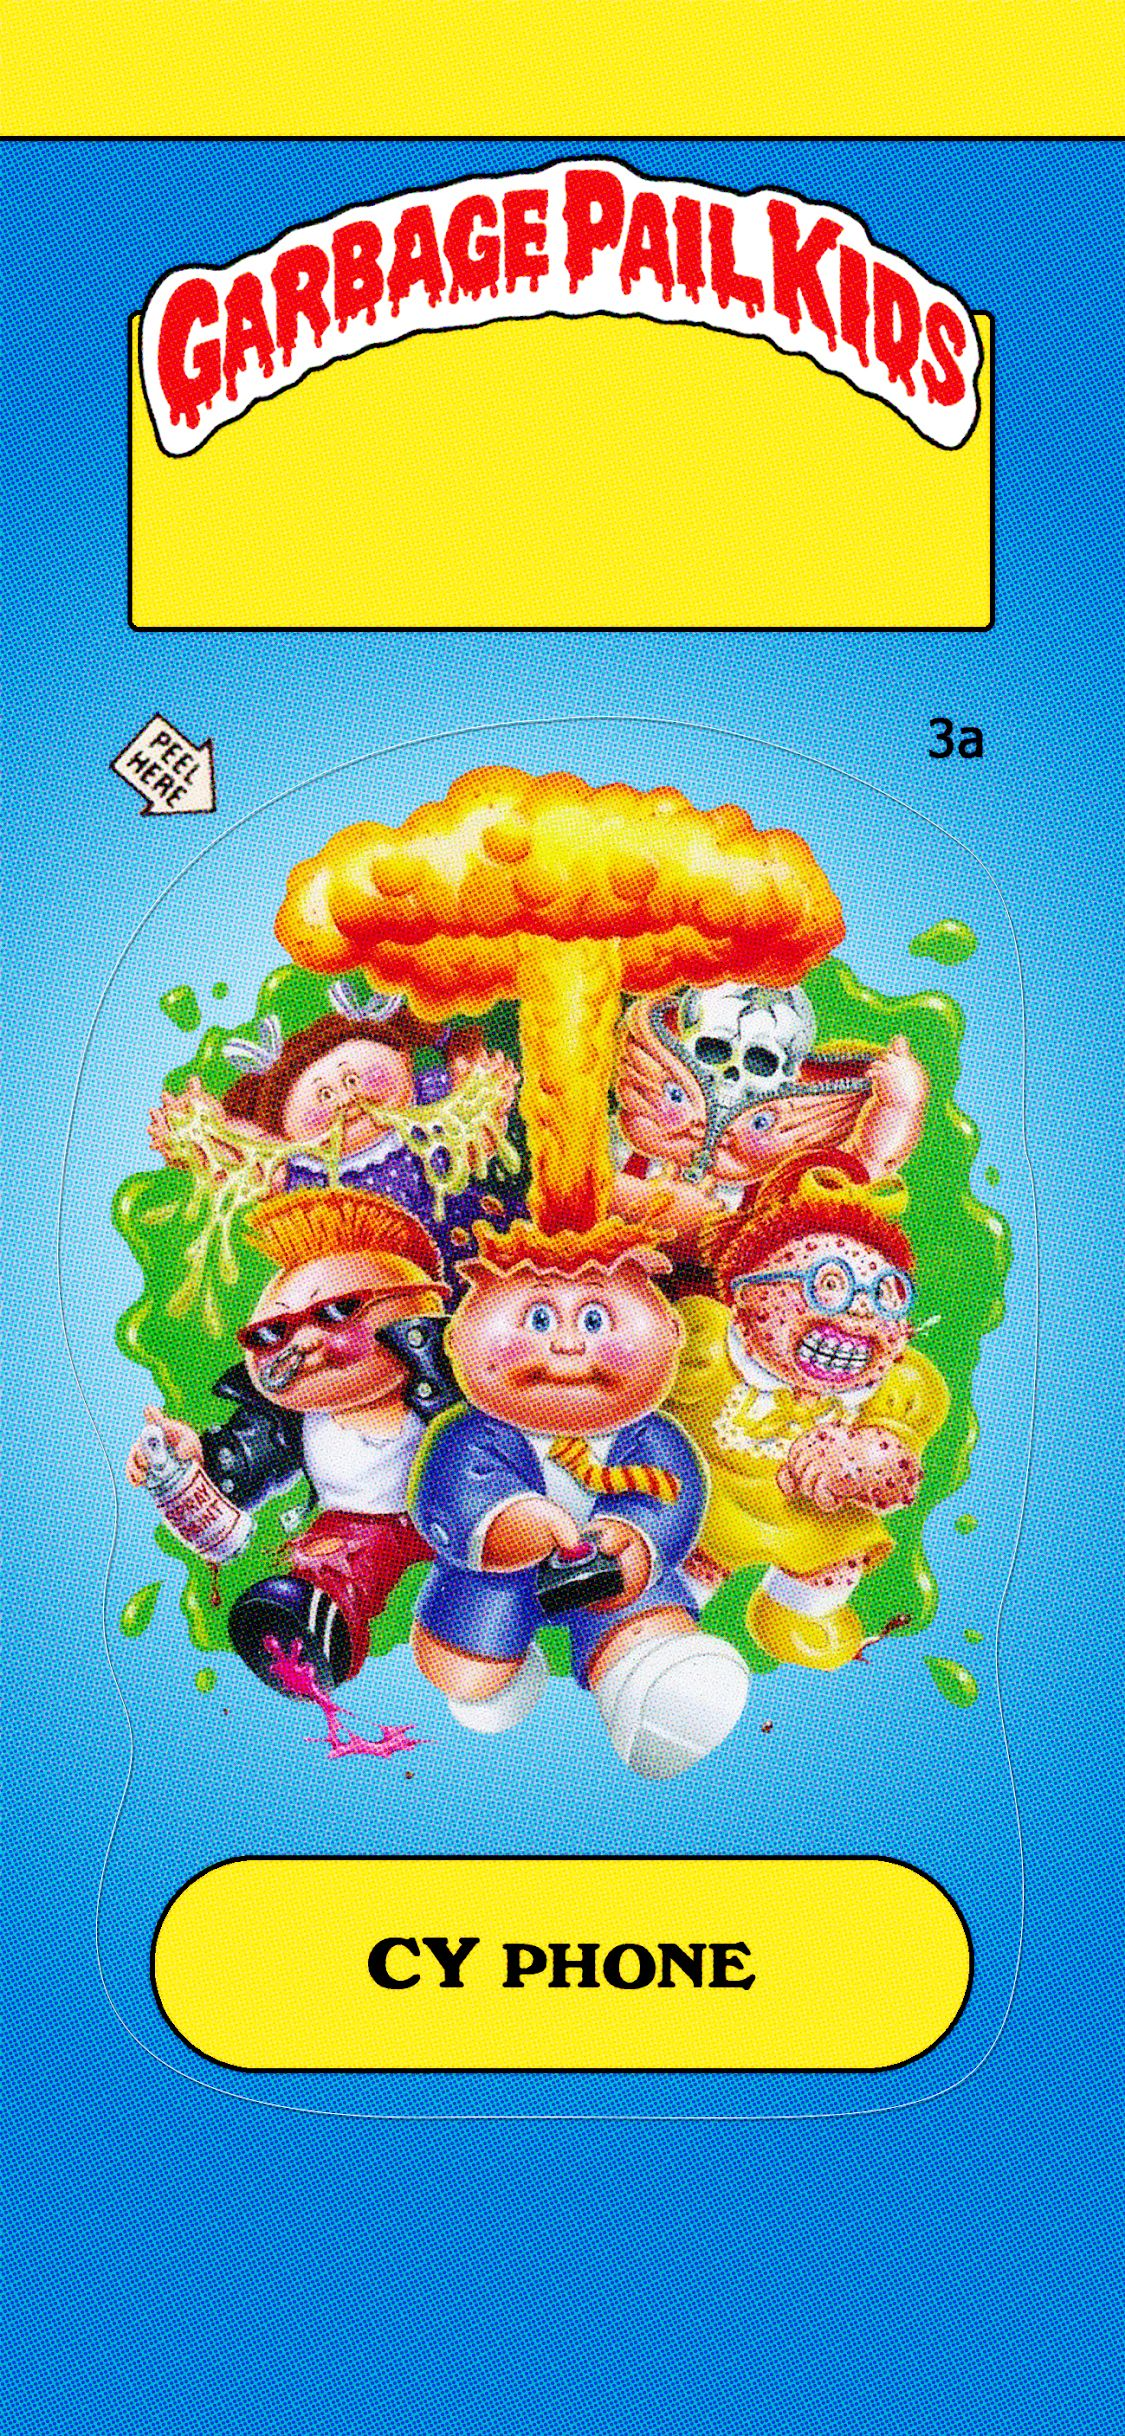 Garbage Pail Kids Iphone Wallpaper Lock Screen Iphone Wallpaper